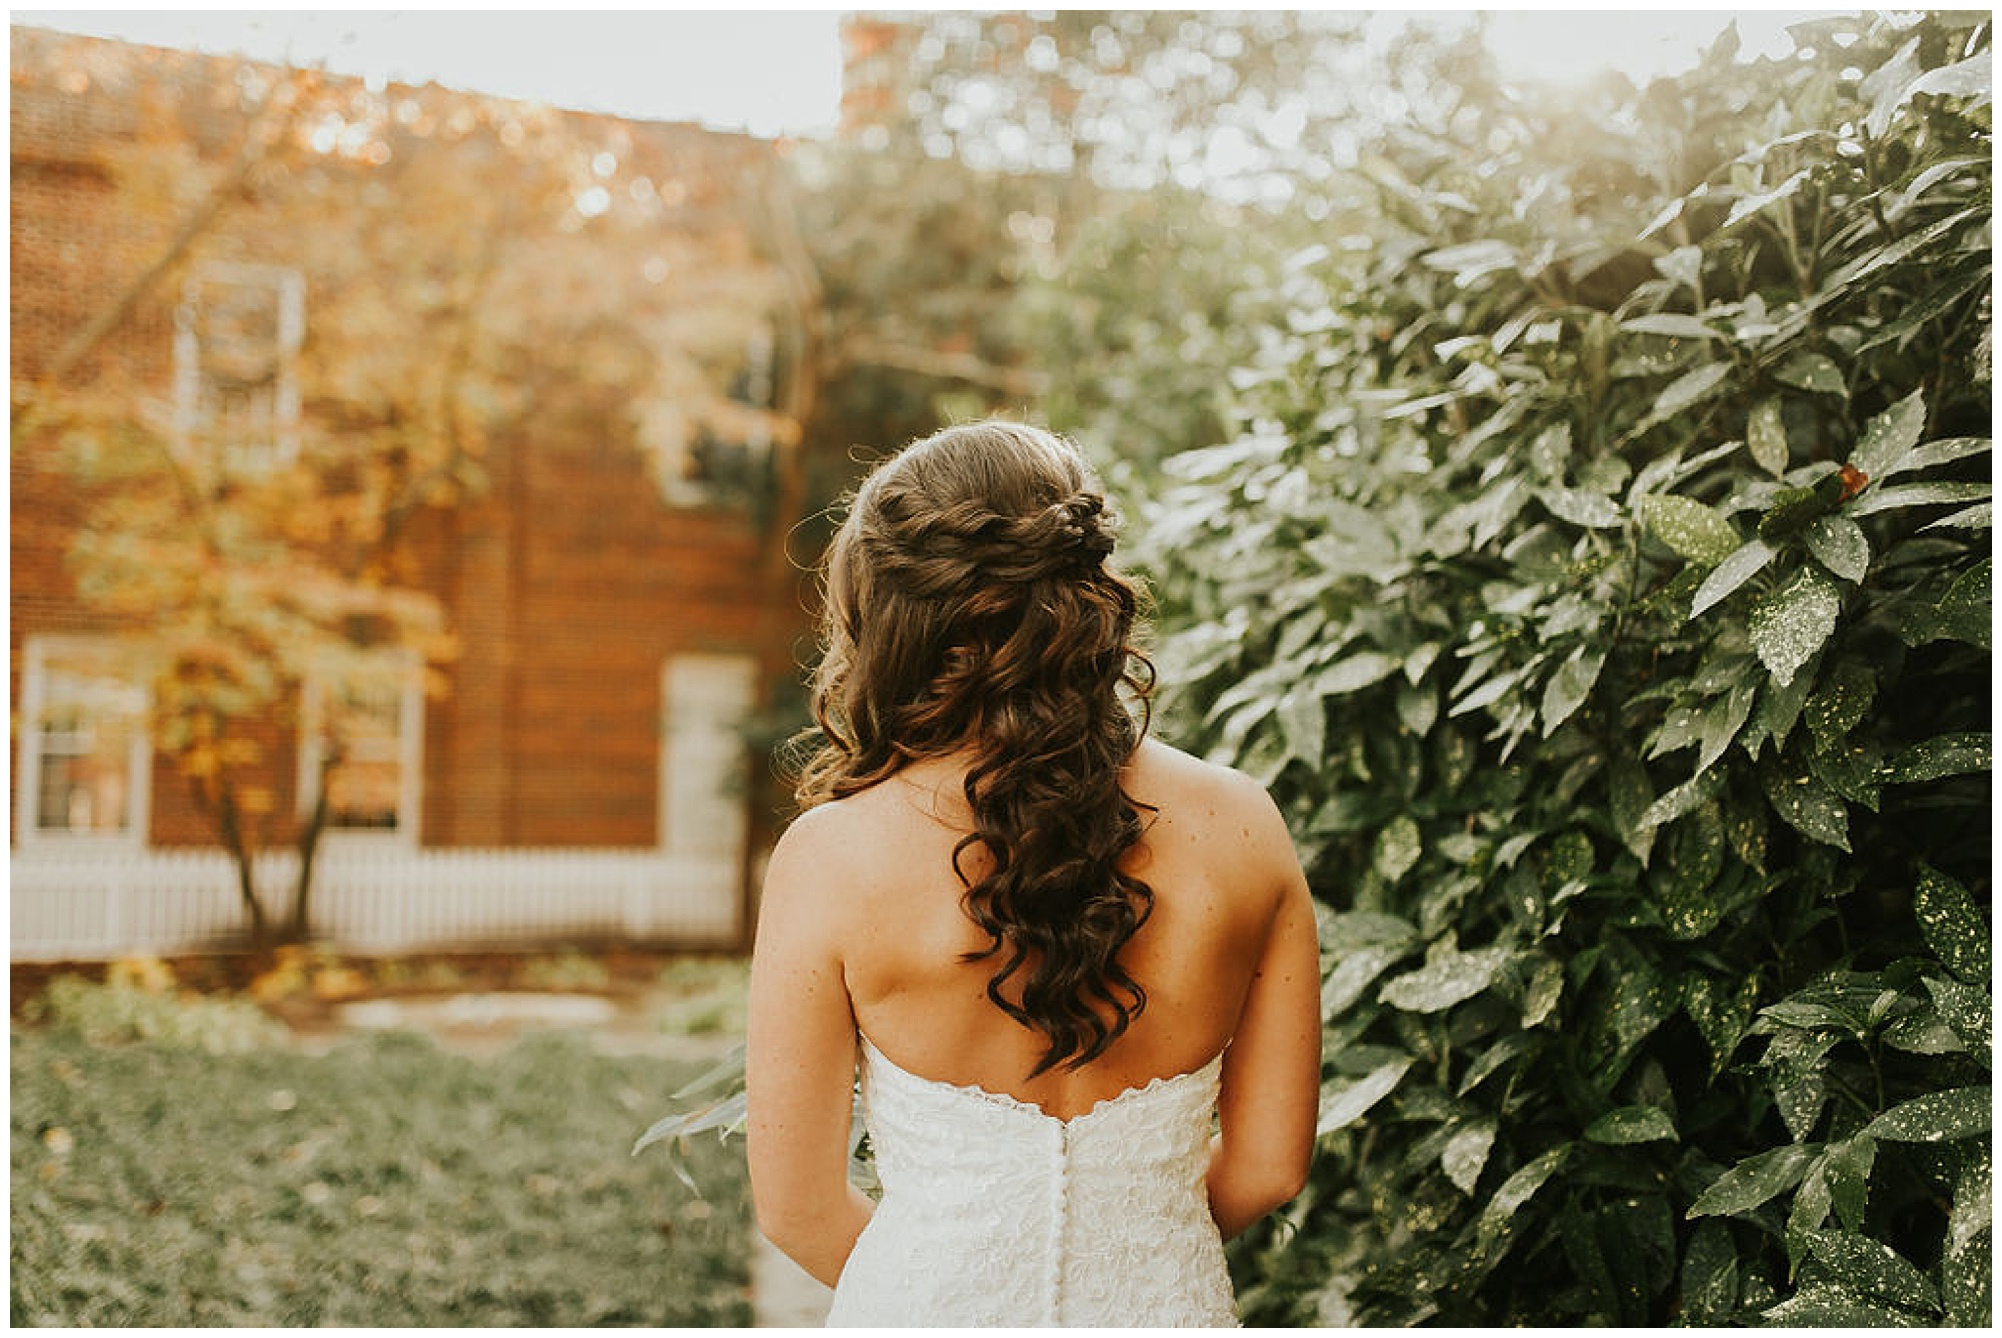 bridal hairstyle ideas and inspiration from fall tidewater inn wedding venue in easton maryland. now on my eastern shore wedding blog.